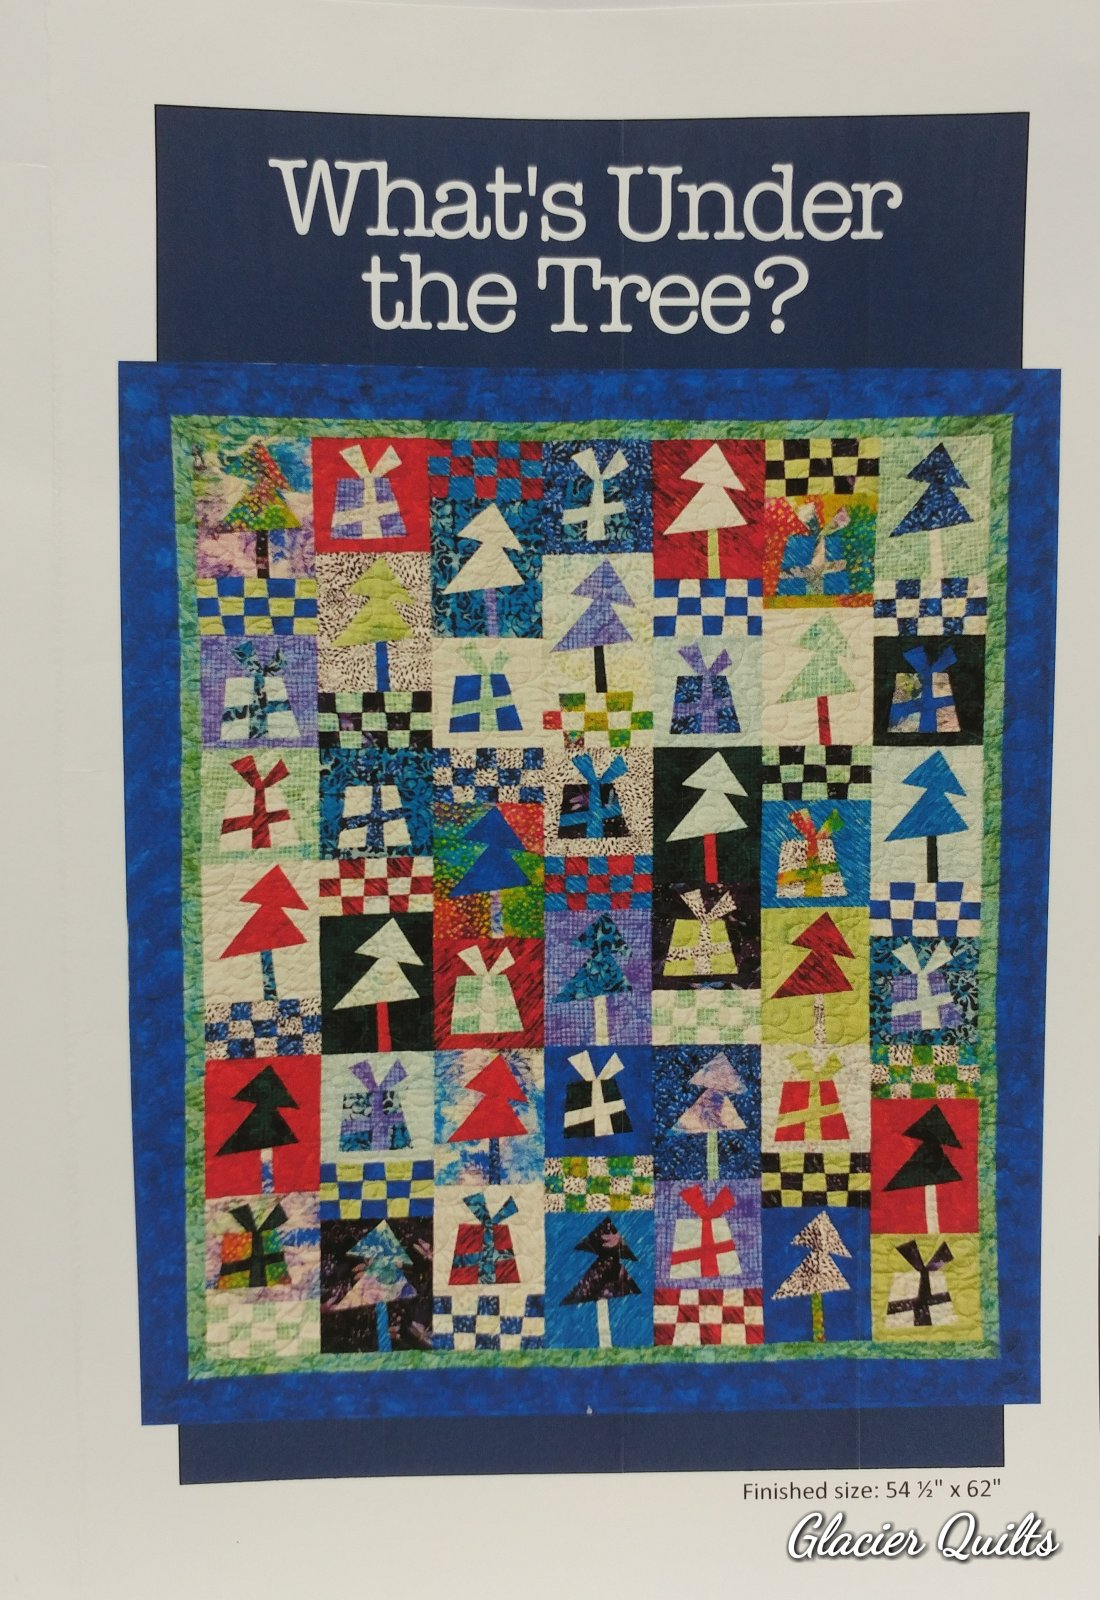 What's Under the Tree? 54.5 x 62